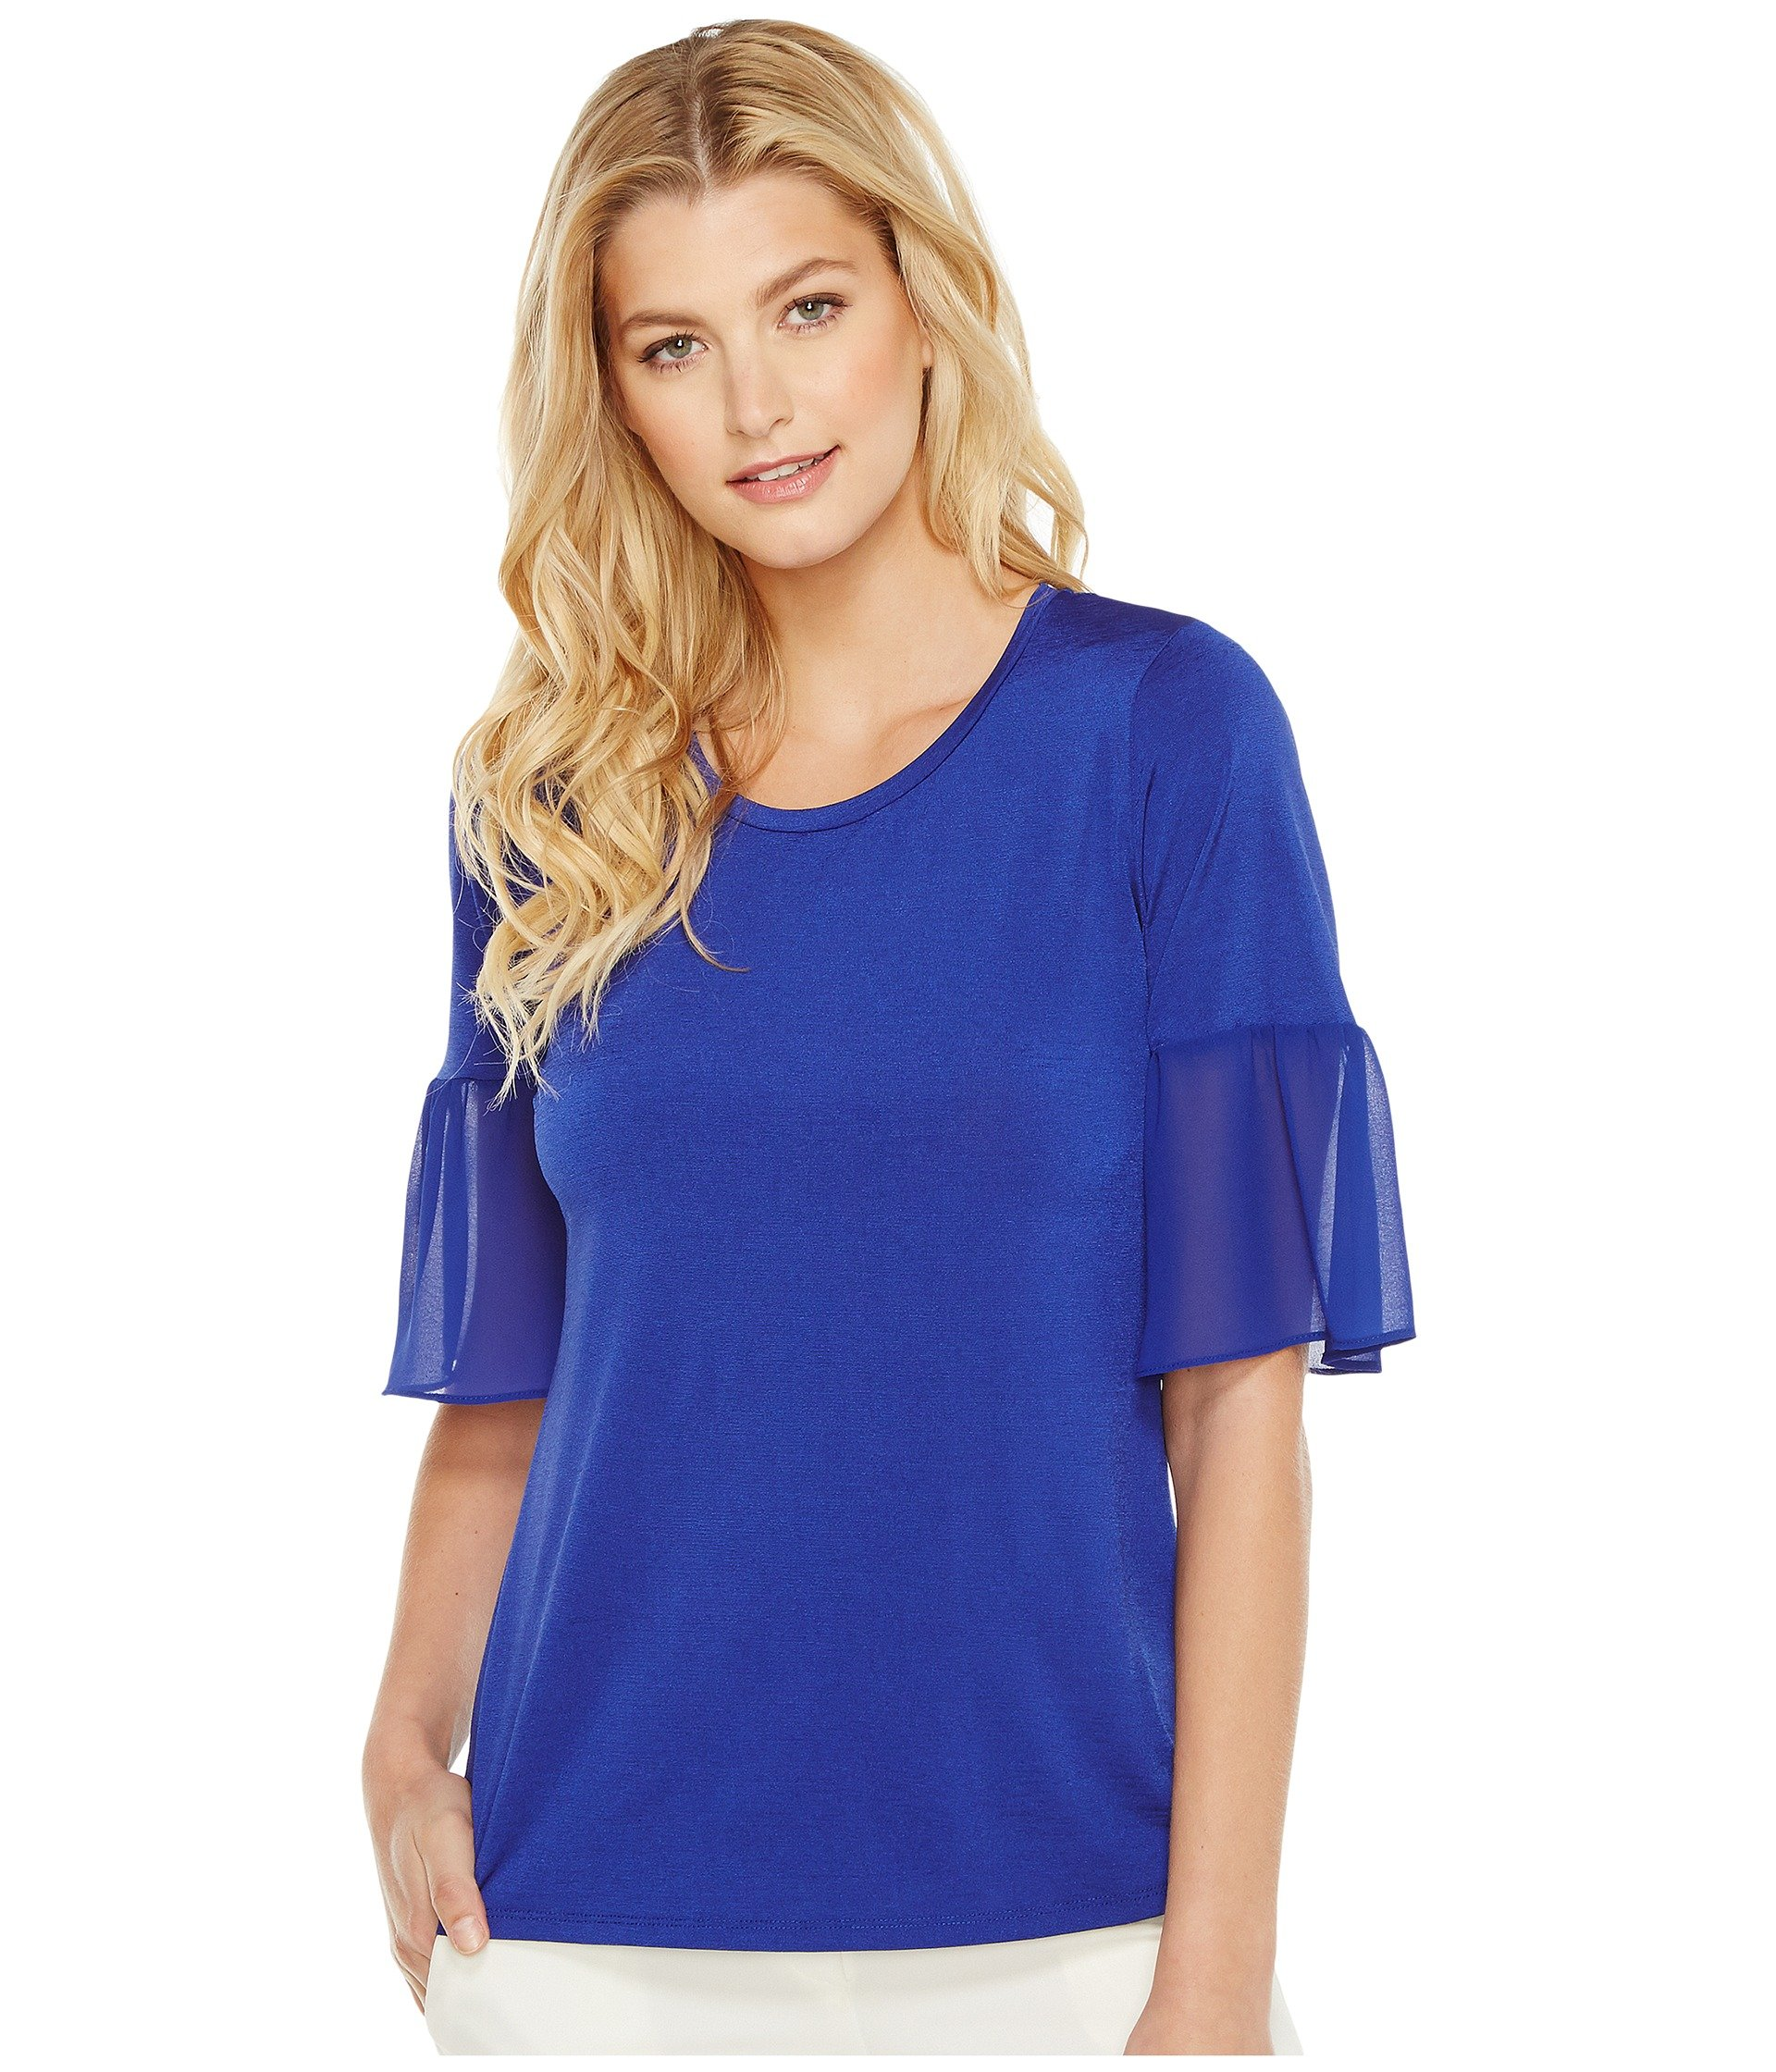 ELLEN TRACY Mixed Media Flounce Sleeve Top, Azure